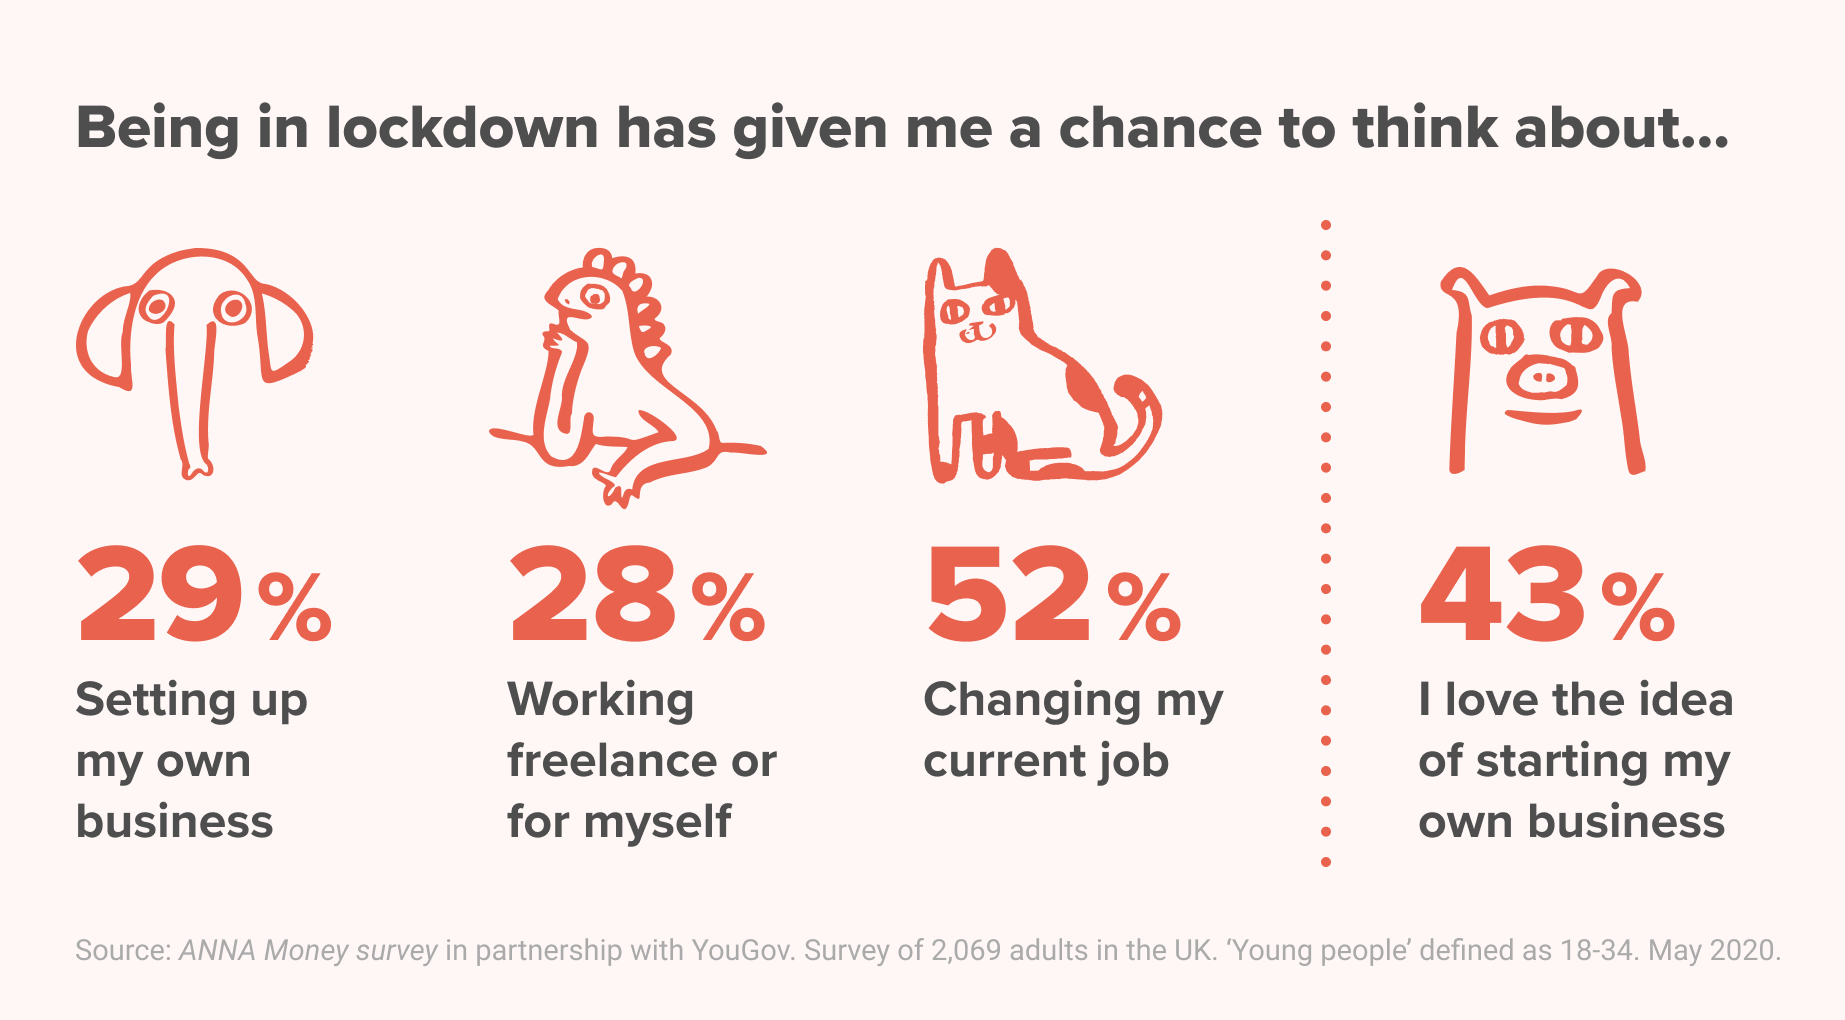 43% of young people love the idea of starting their own business - we love that